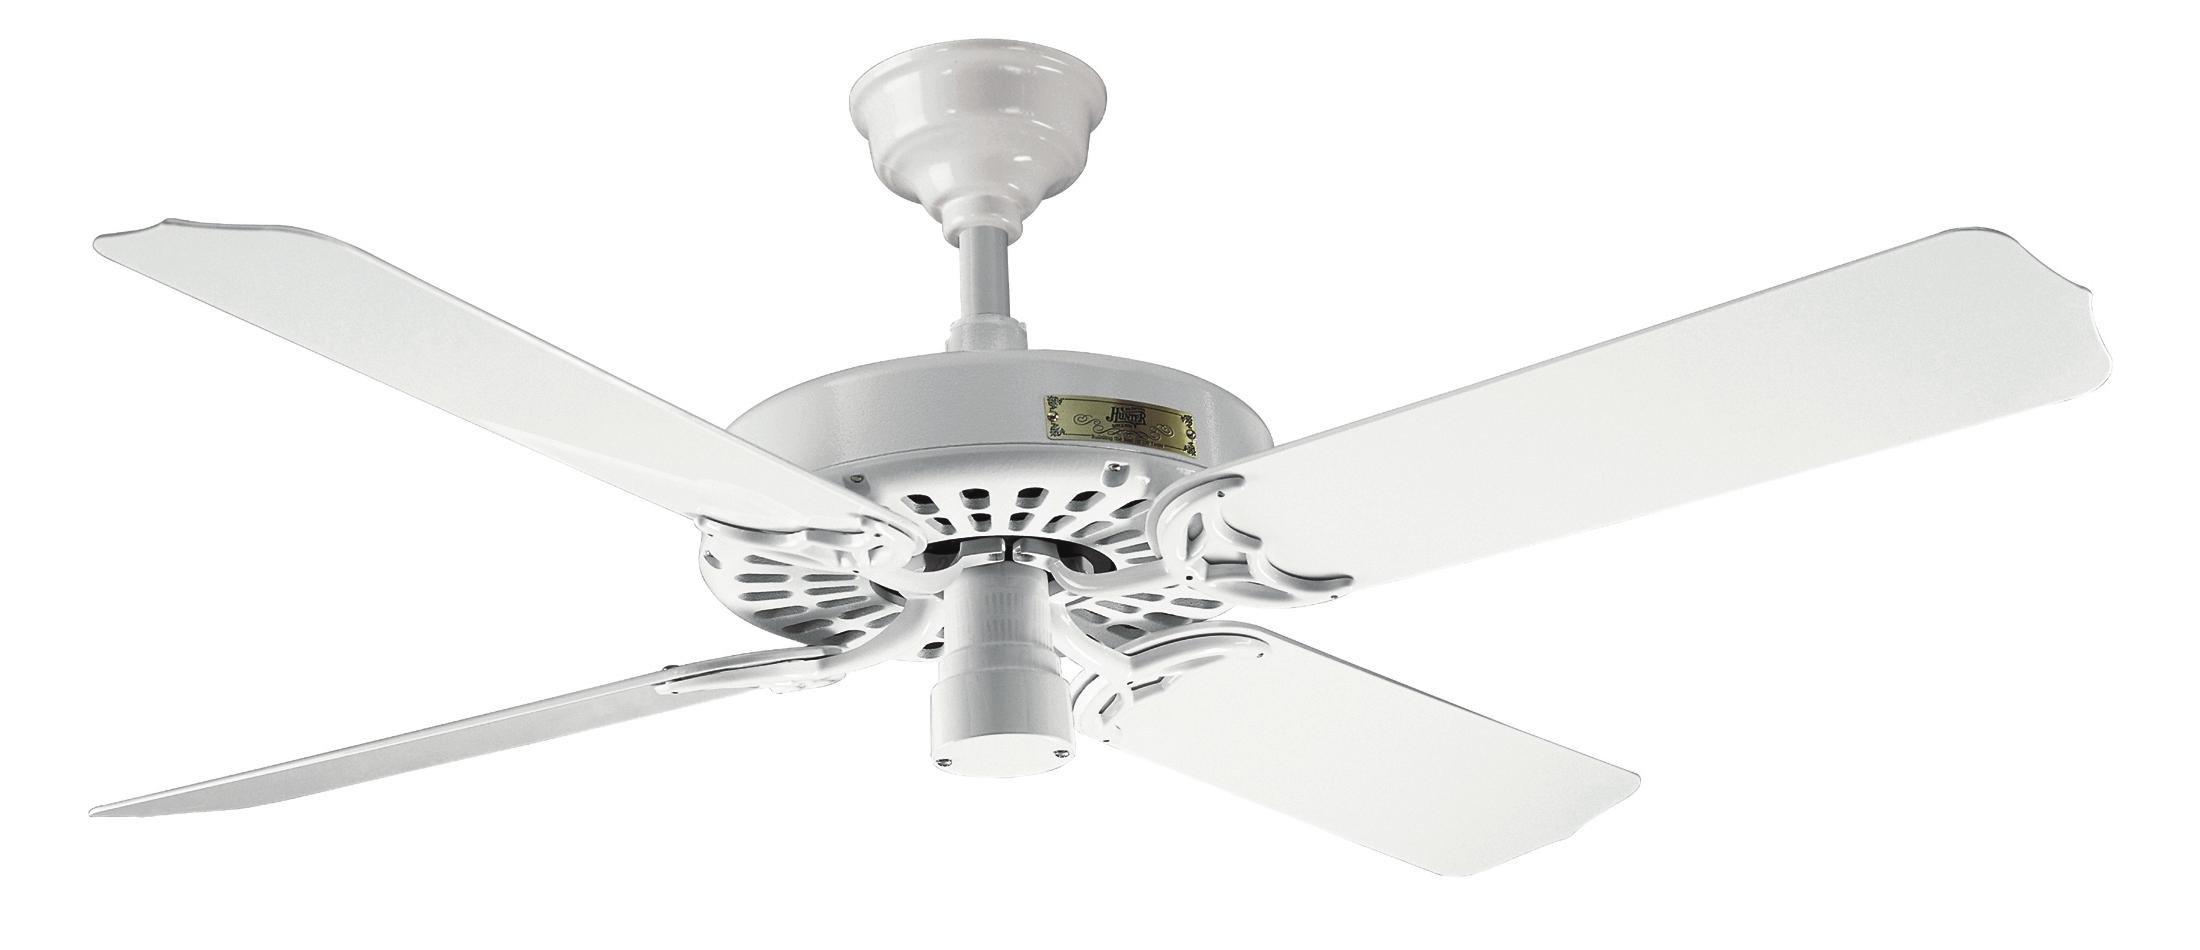 Best Ceiling Fan Clipart 20706